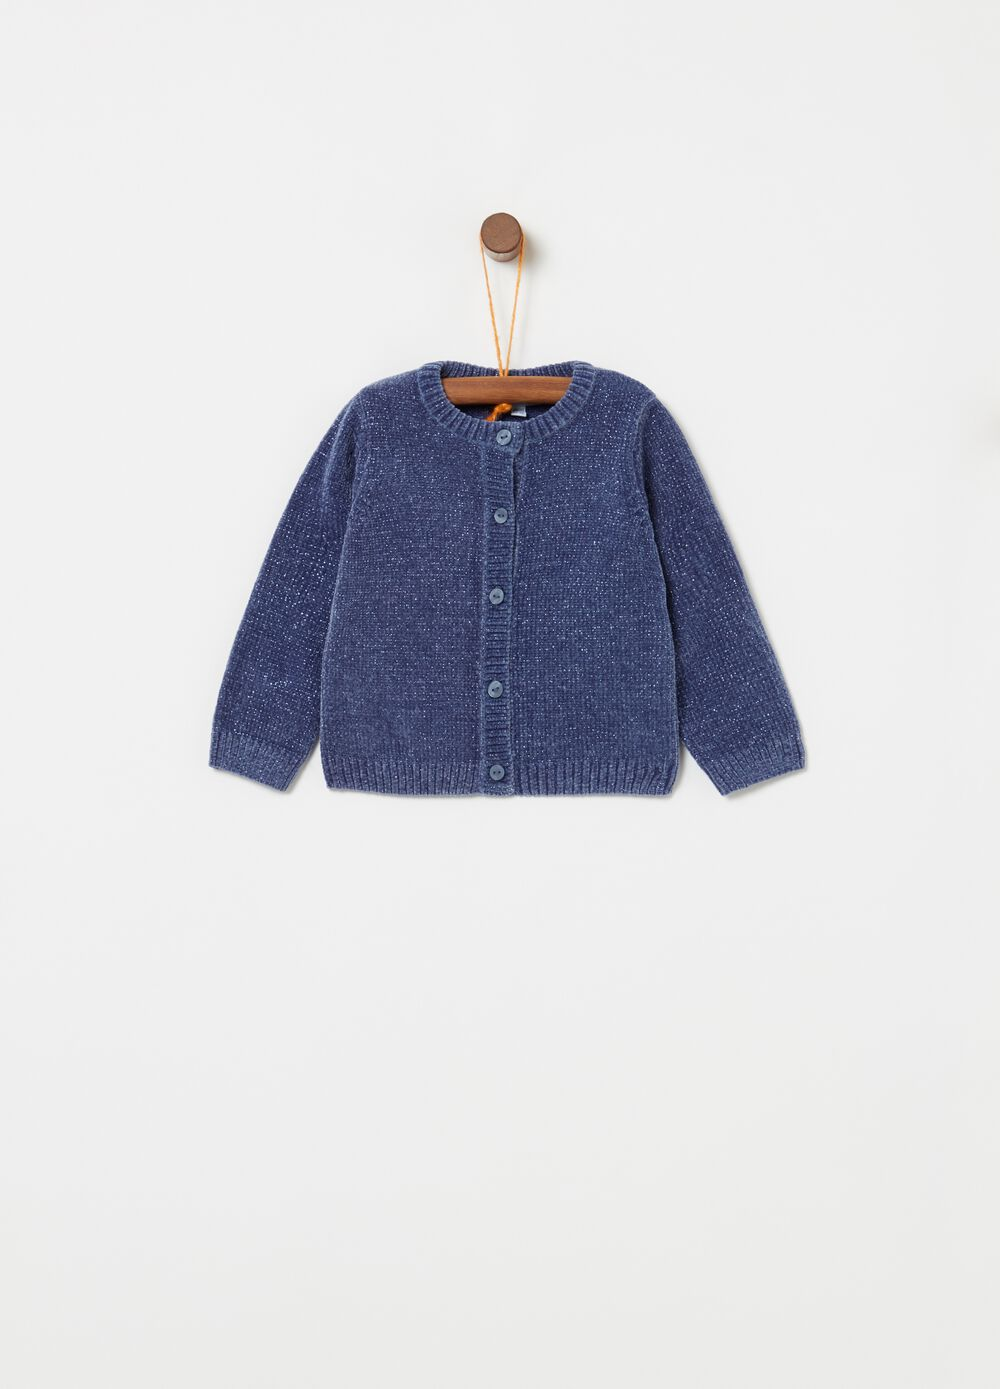 Solid colour knitted cardigan with lurex